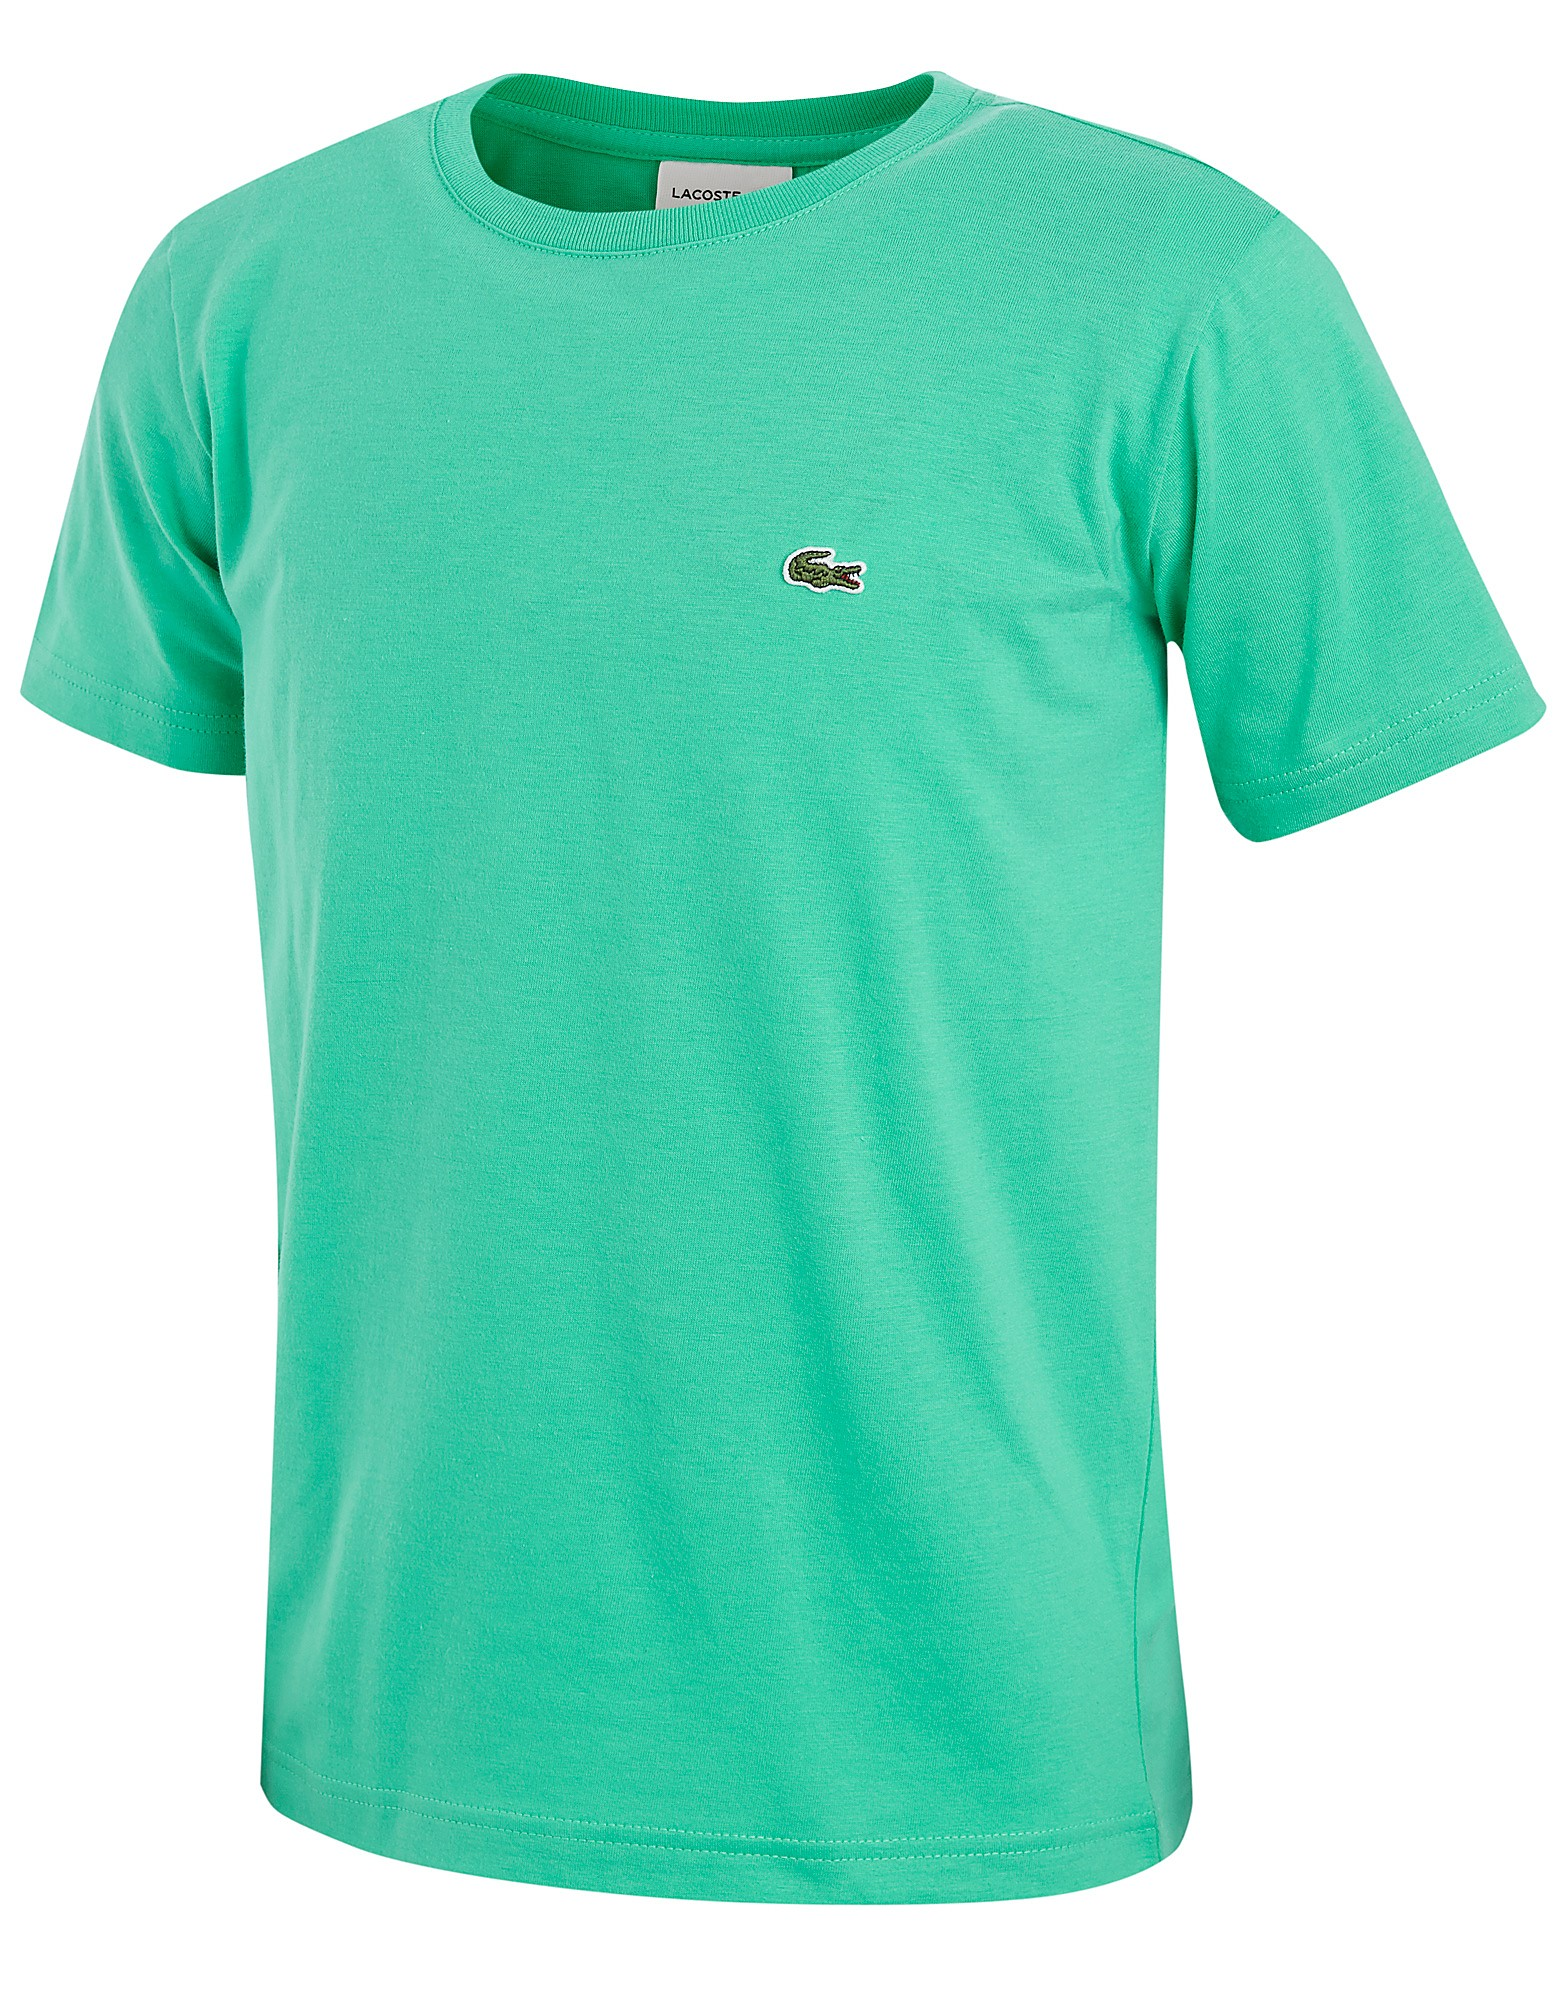 Lacoste Small Logo T-Shirt Junior product image